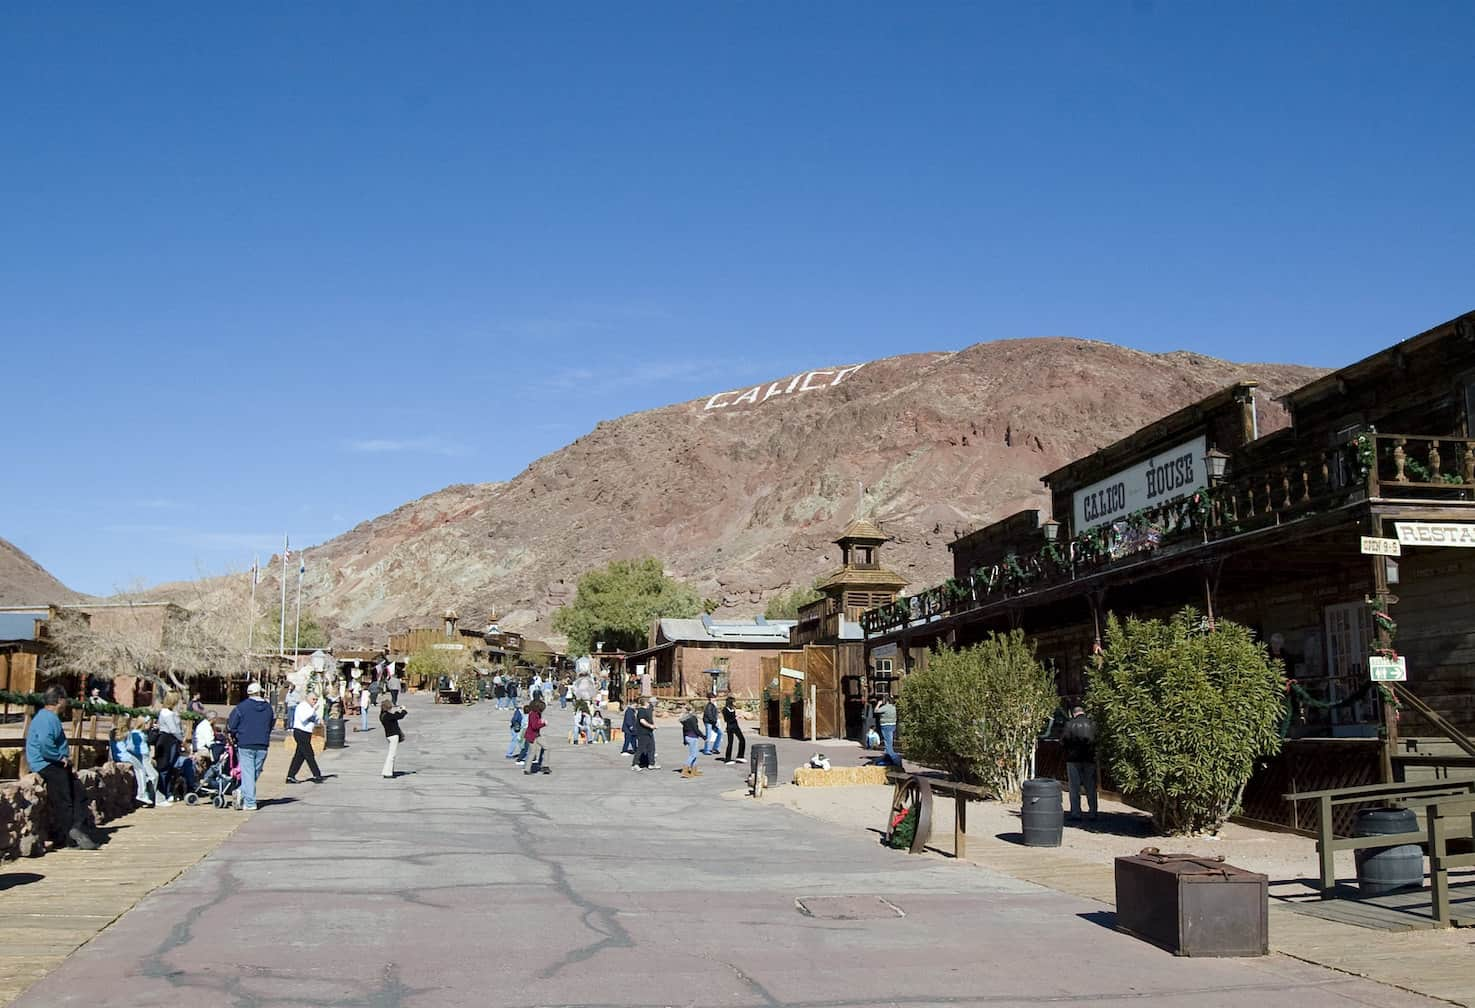 Calico Ghost Town - Lin Mei via Flickr